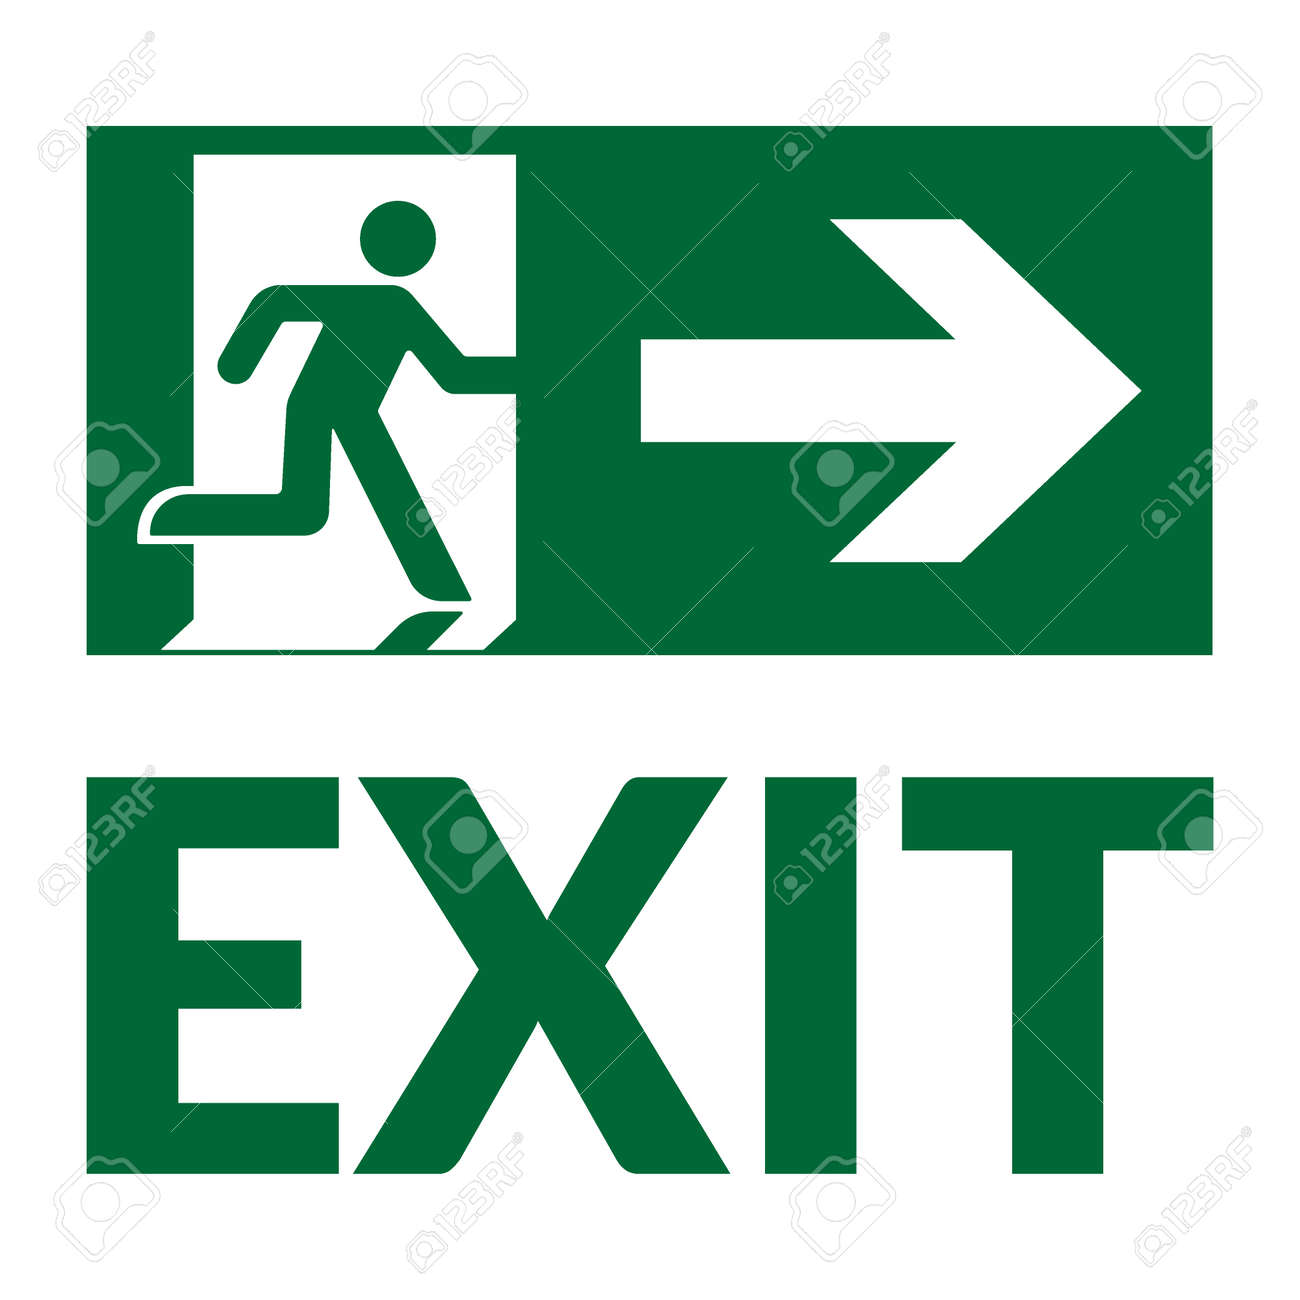 Emergency stop icon clipart emergency off - Emergency Exit Sign With Text Emergency Fire Exit Door And Exit Door Green